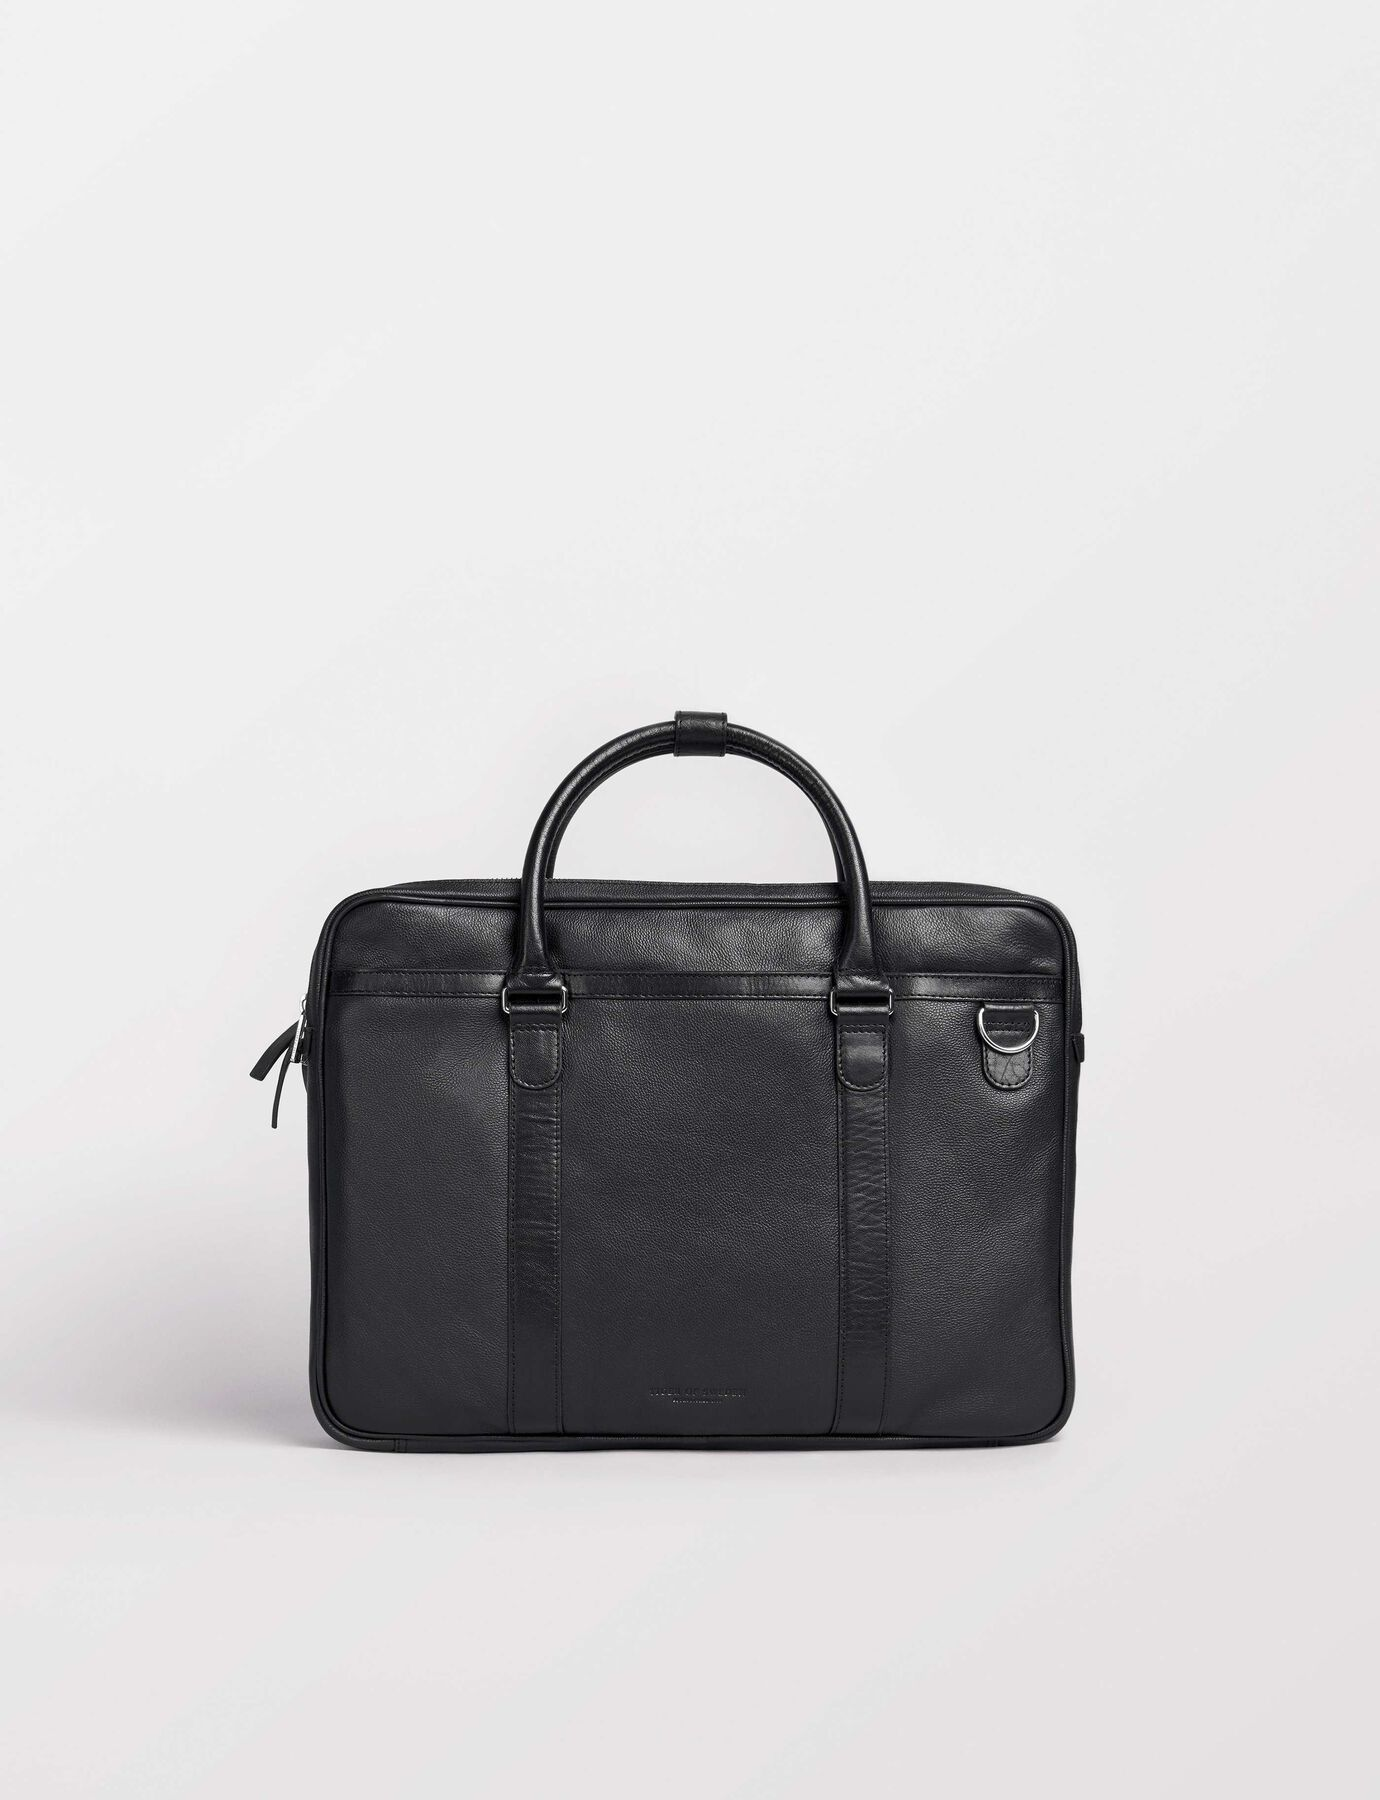 Printel briefcase in Black from Tiger of Sweden